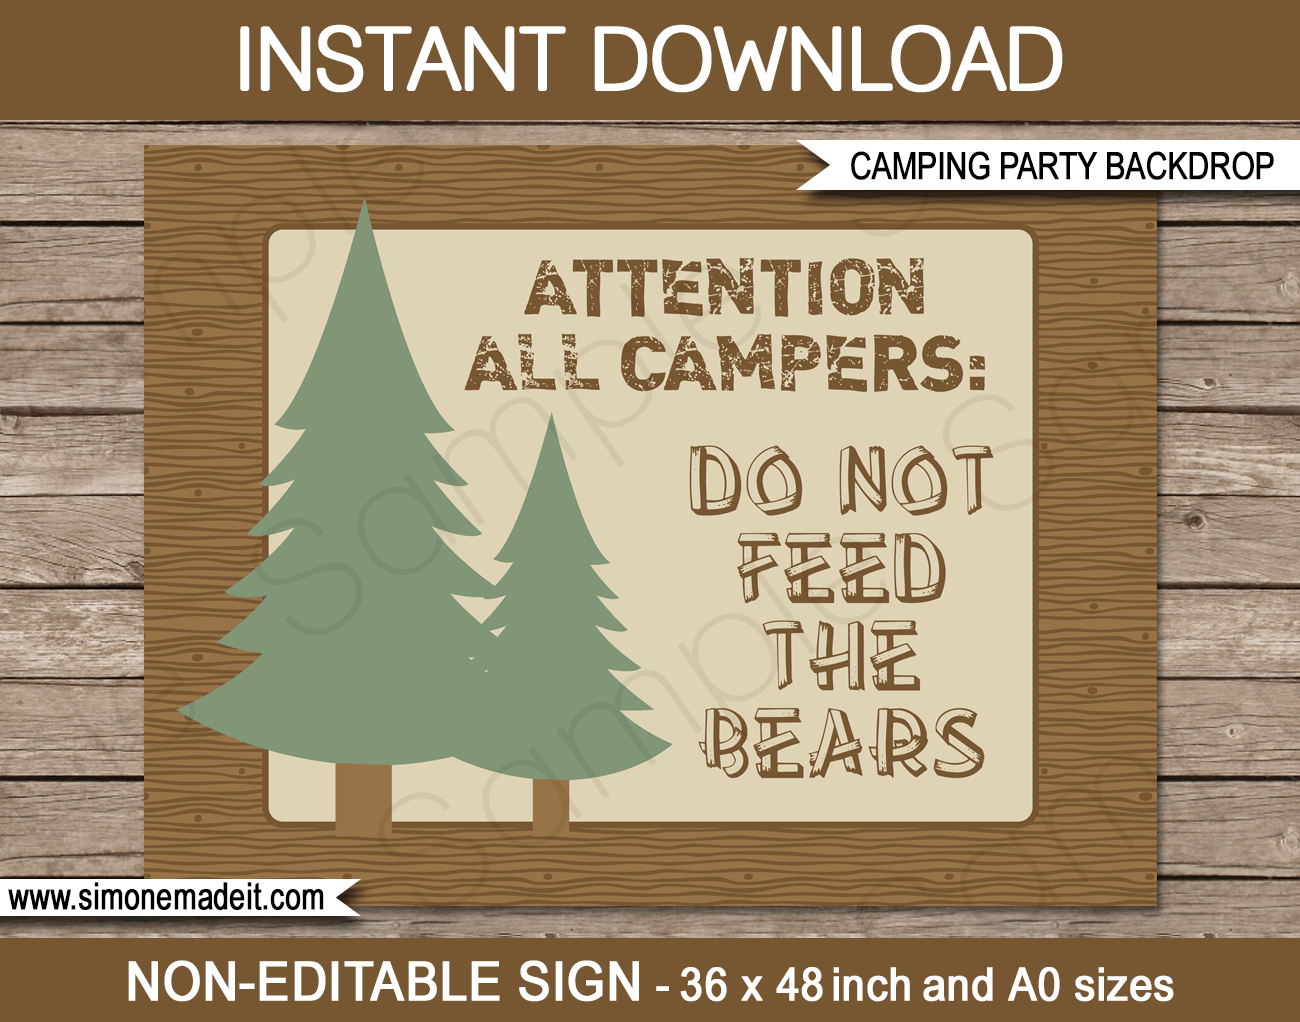 Camping Party Sign Backdrop | Camping Party Decorations - Free Printable Camping Signs